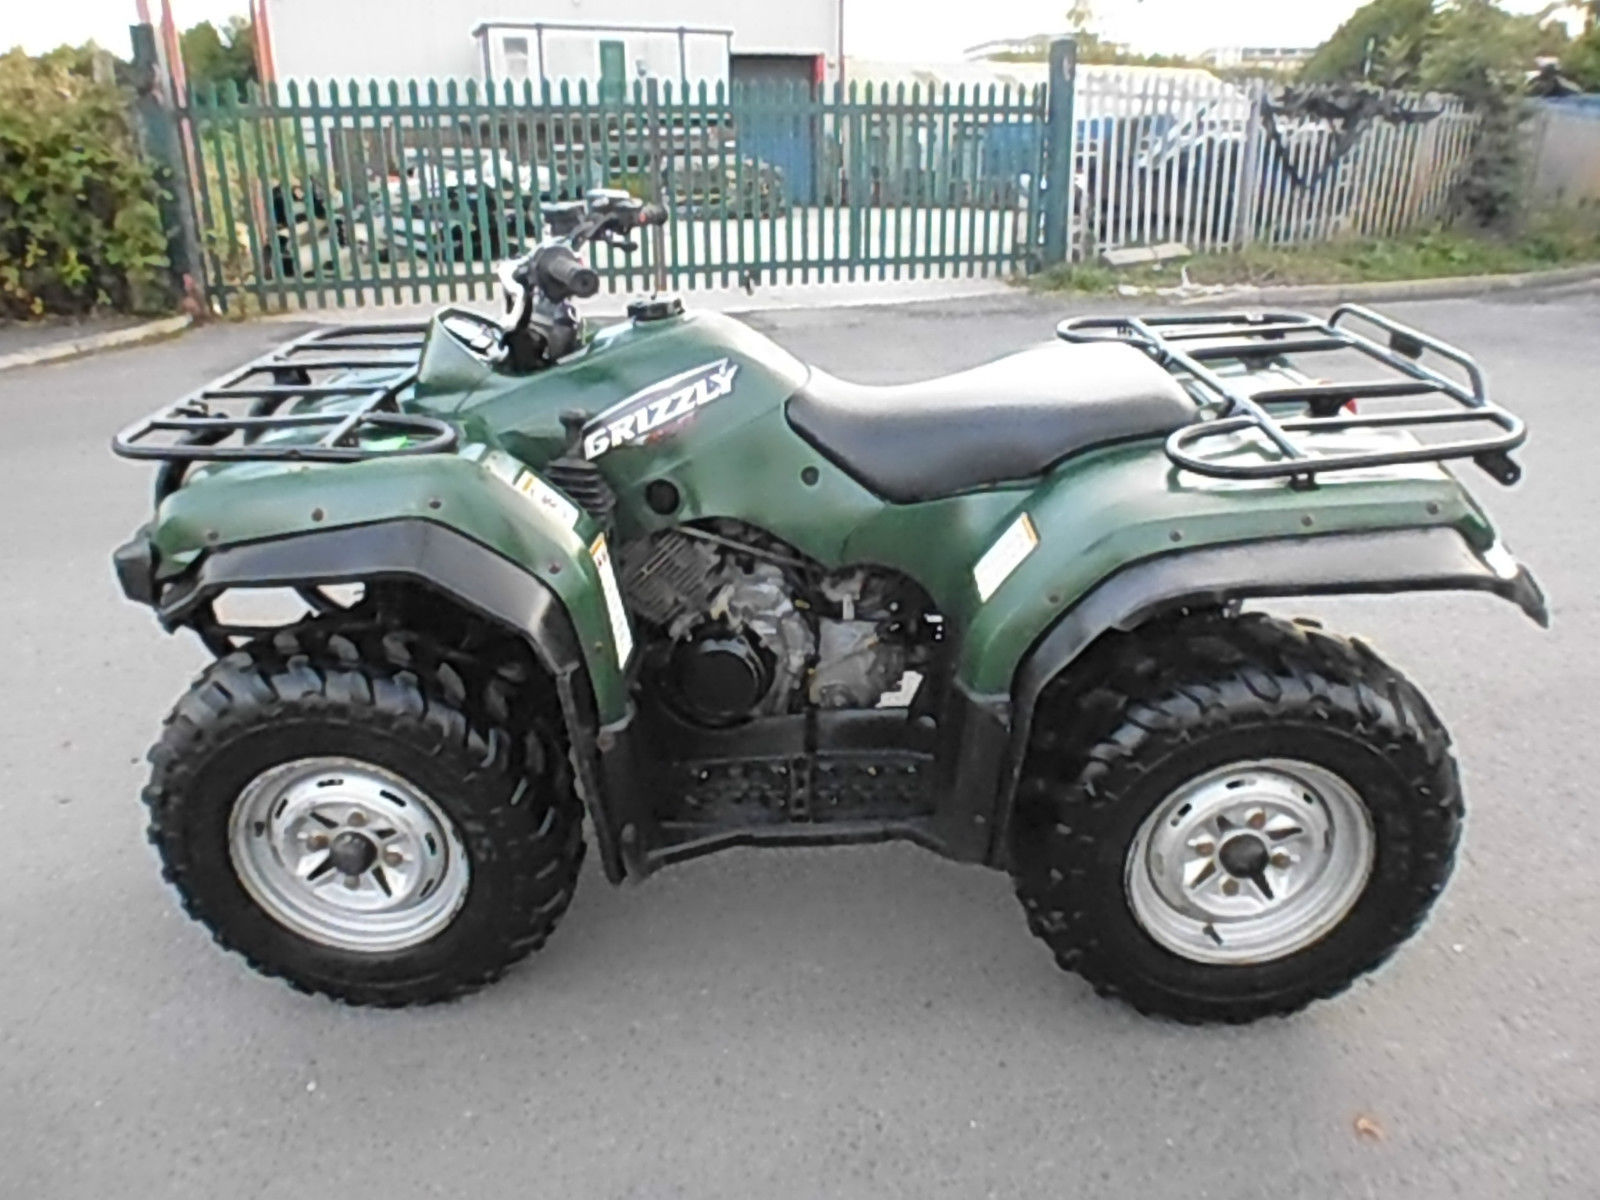 yamaha grizzly 350 4x4 farm quad bike atv ideal smallholding equestrian. Black Bedroom Furniture Sets. Home Design Ideas